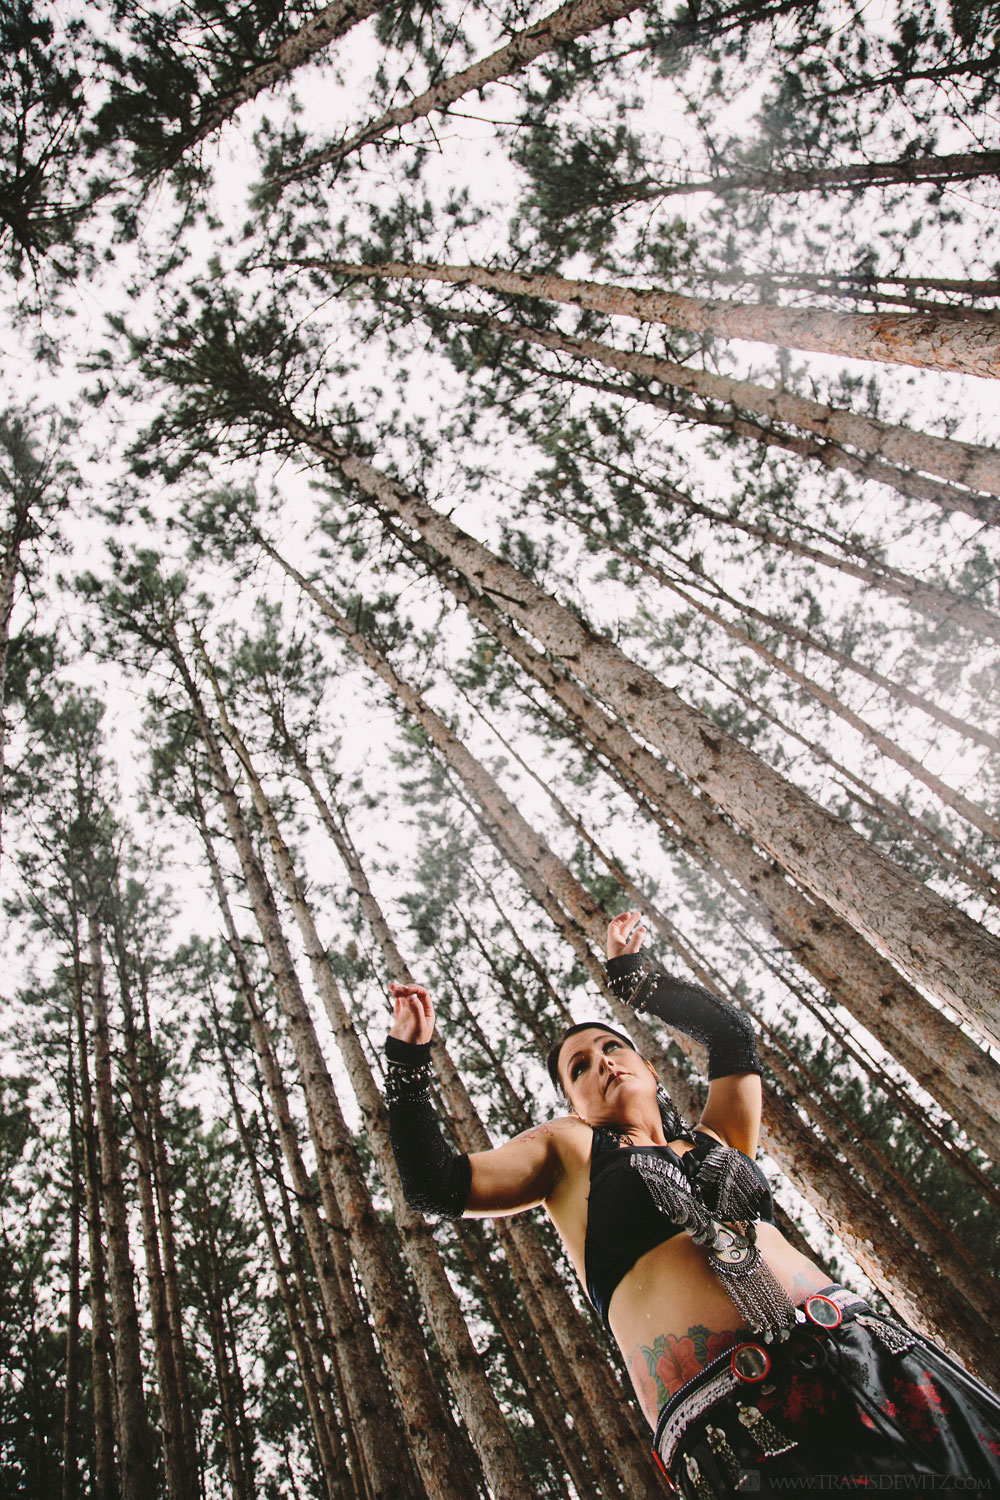 jean_belly_dancing_among_tall_pine_tress